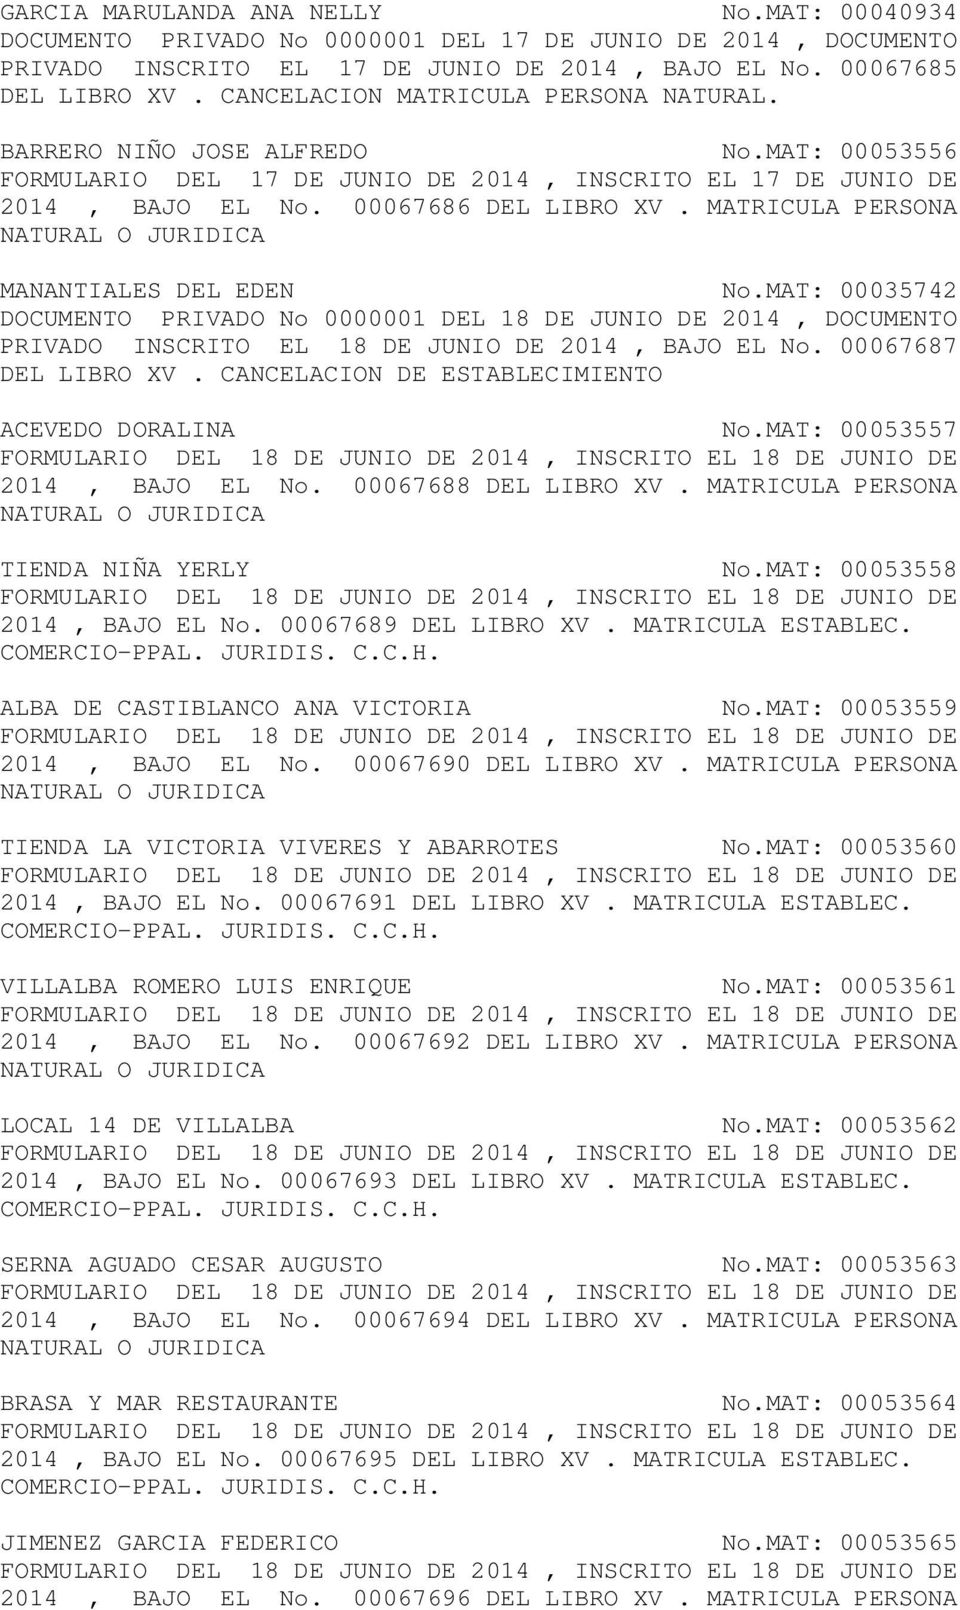 MATRICULA PERSONA MANANTIALES DEL EDEN No.MAT: 00035742 DOCUMENTO PRIVADO No 0000001 DEL 18 DE JUNIO DE 2014, DOCUMENTO PRIVADO INSCRITO EL 18 DE JUNIO DE 2014, BAJO EL No.